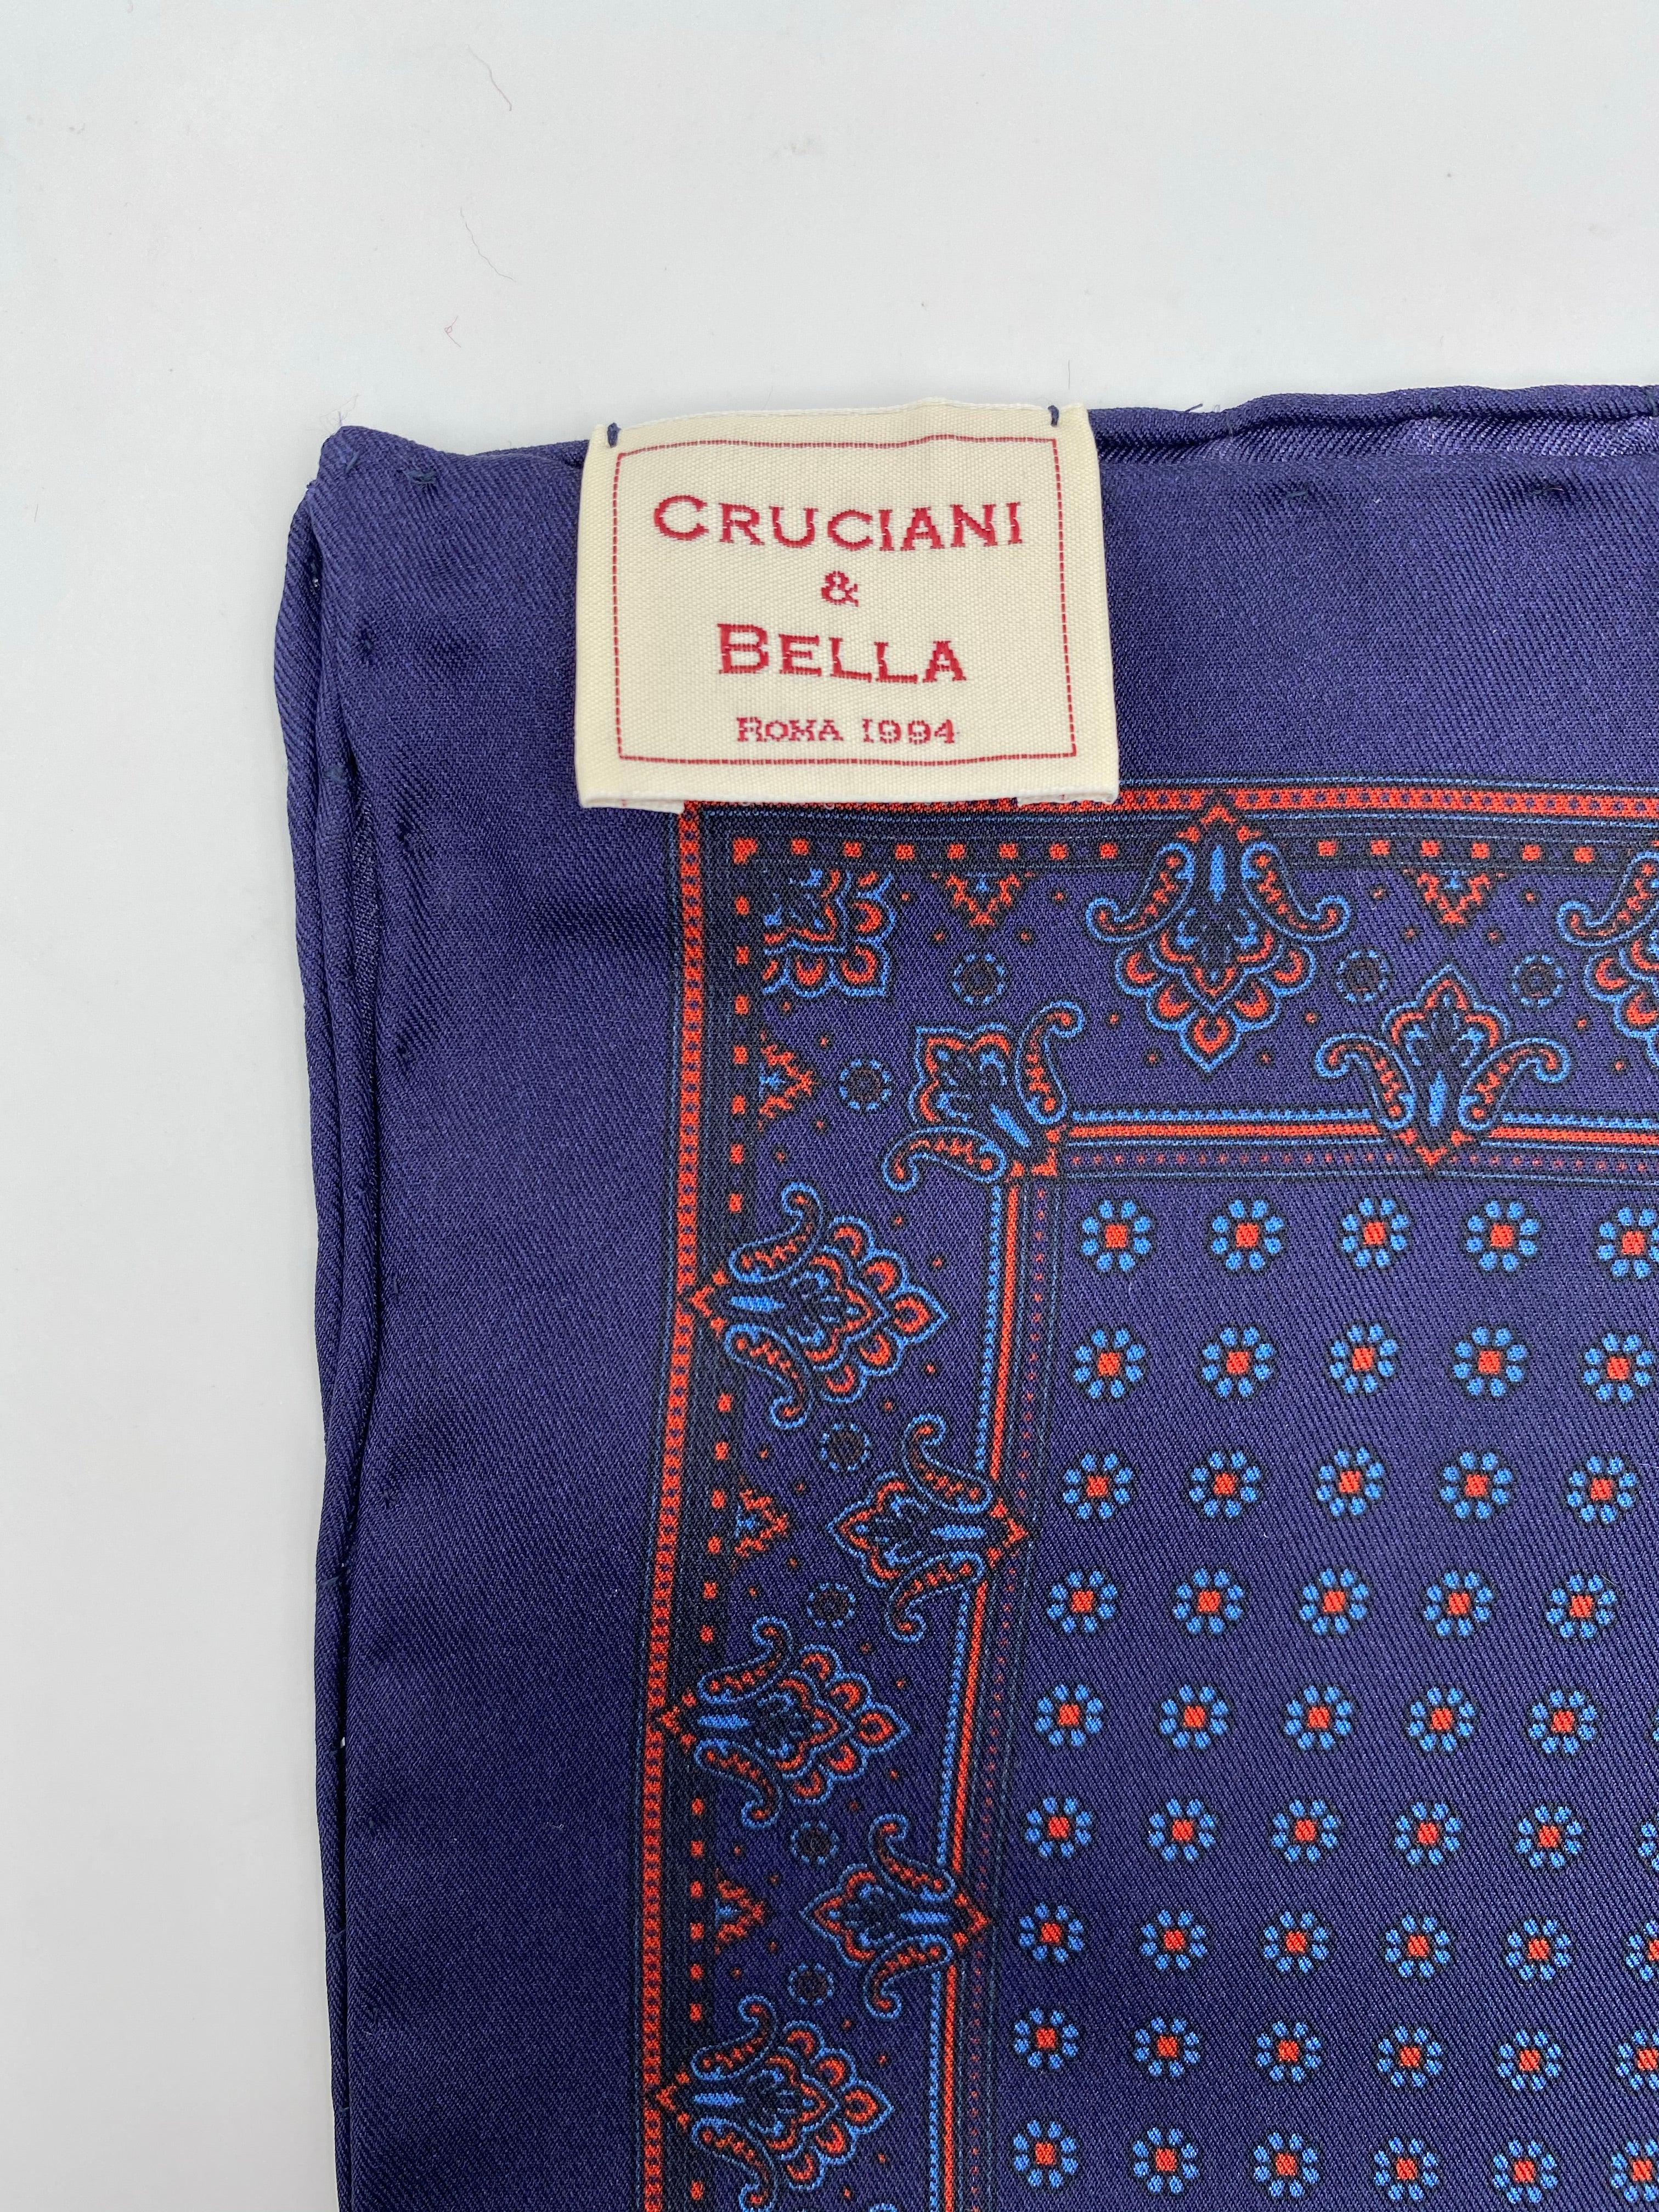 Cruciani & Bella 100% Printed Silk  Hand-rolled Blue and Rust Floral Motif Pocket Square Handmade in England 32 cm  X 32 cm #4540